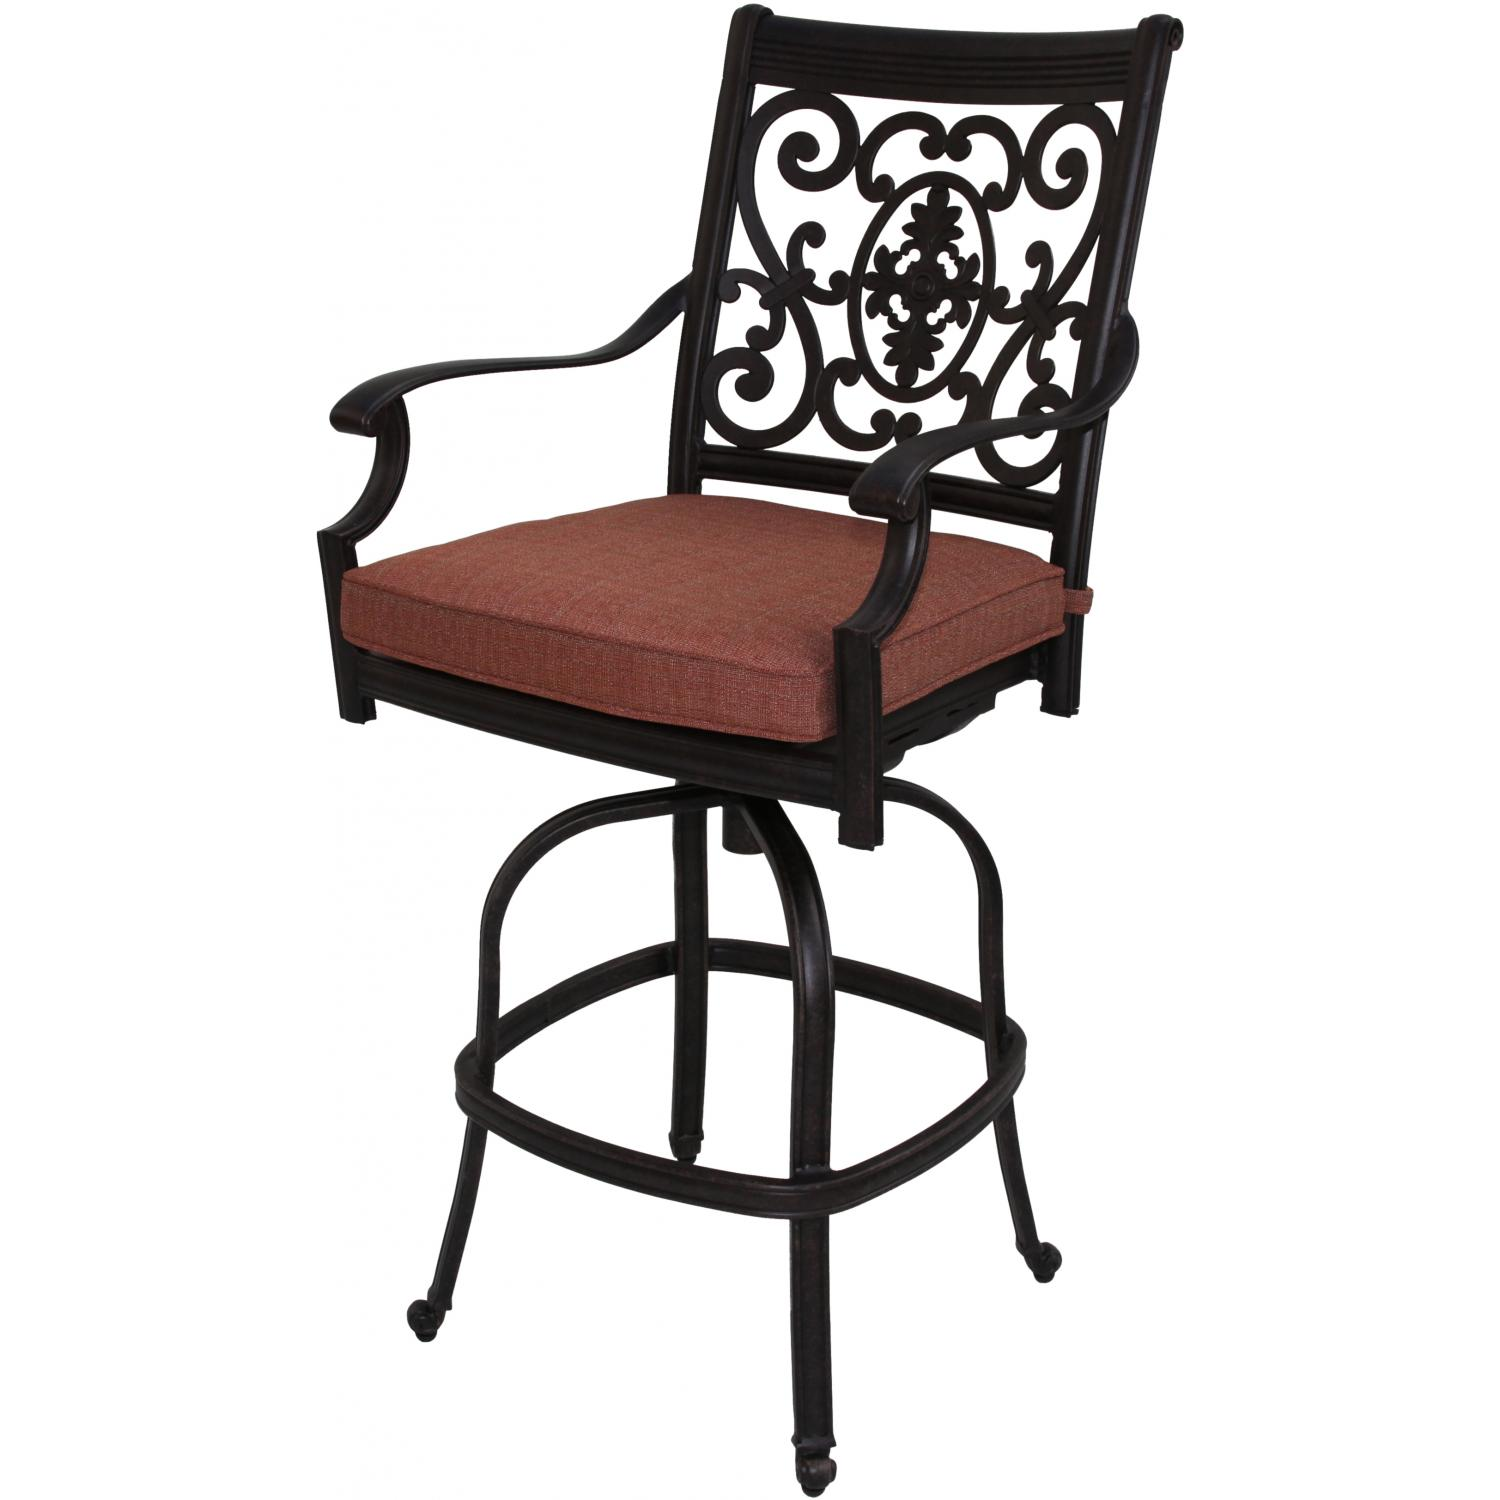 Marvelous photograph of  Rocker Dining Chair Antique Bronze U.S.A. & Canada ID SC01 3 2 2 AB with #77443B color and 1500x1500 pixels